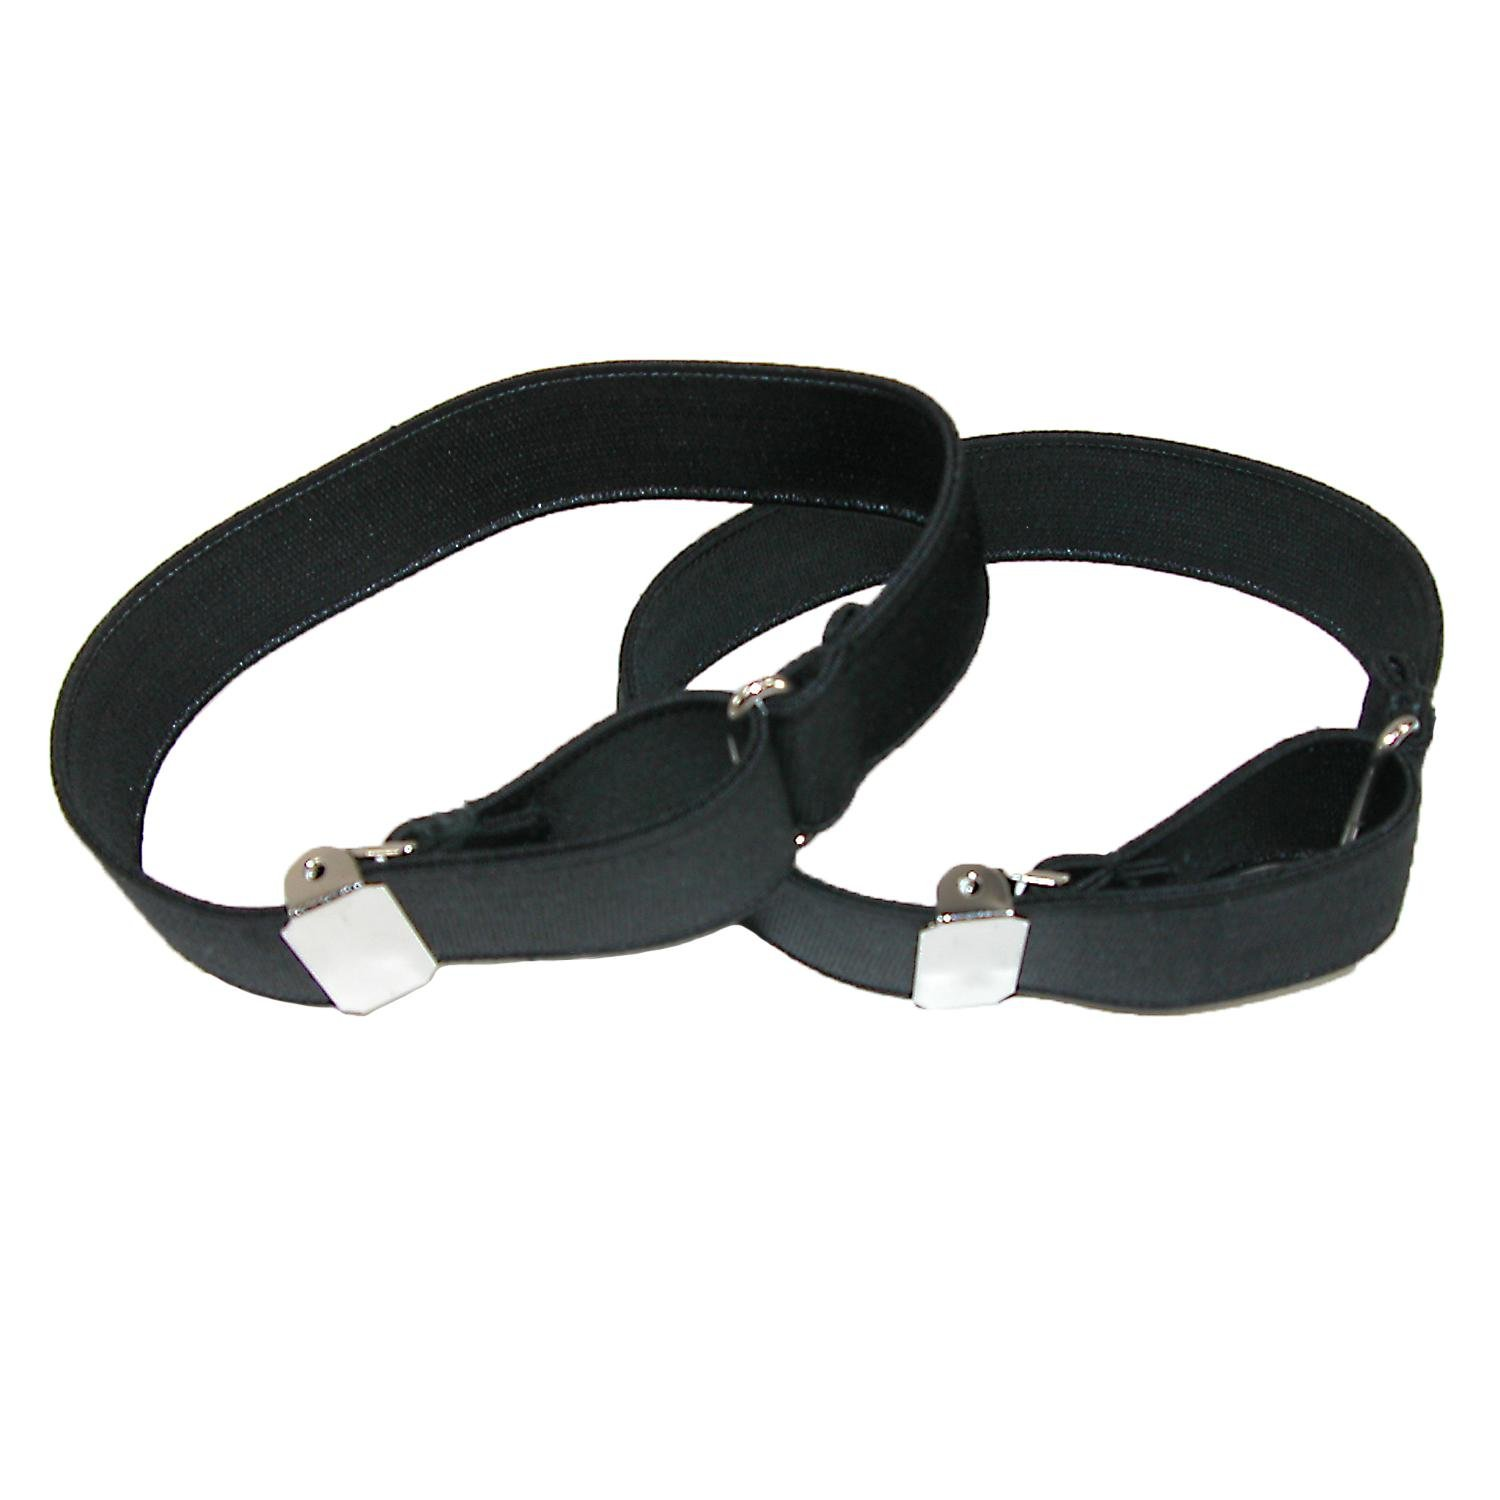 Edwardian Men's Fashion & Clothing Armband Sleeve Garter CTM Satin Elastic Solid Color Adjustable $14.94 AT vintagedancer.com